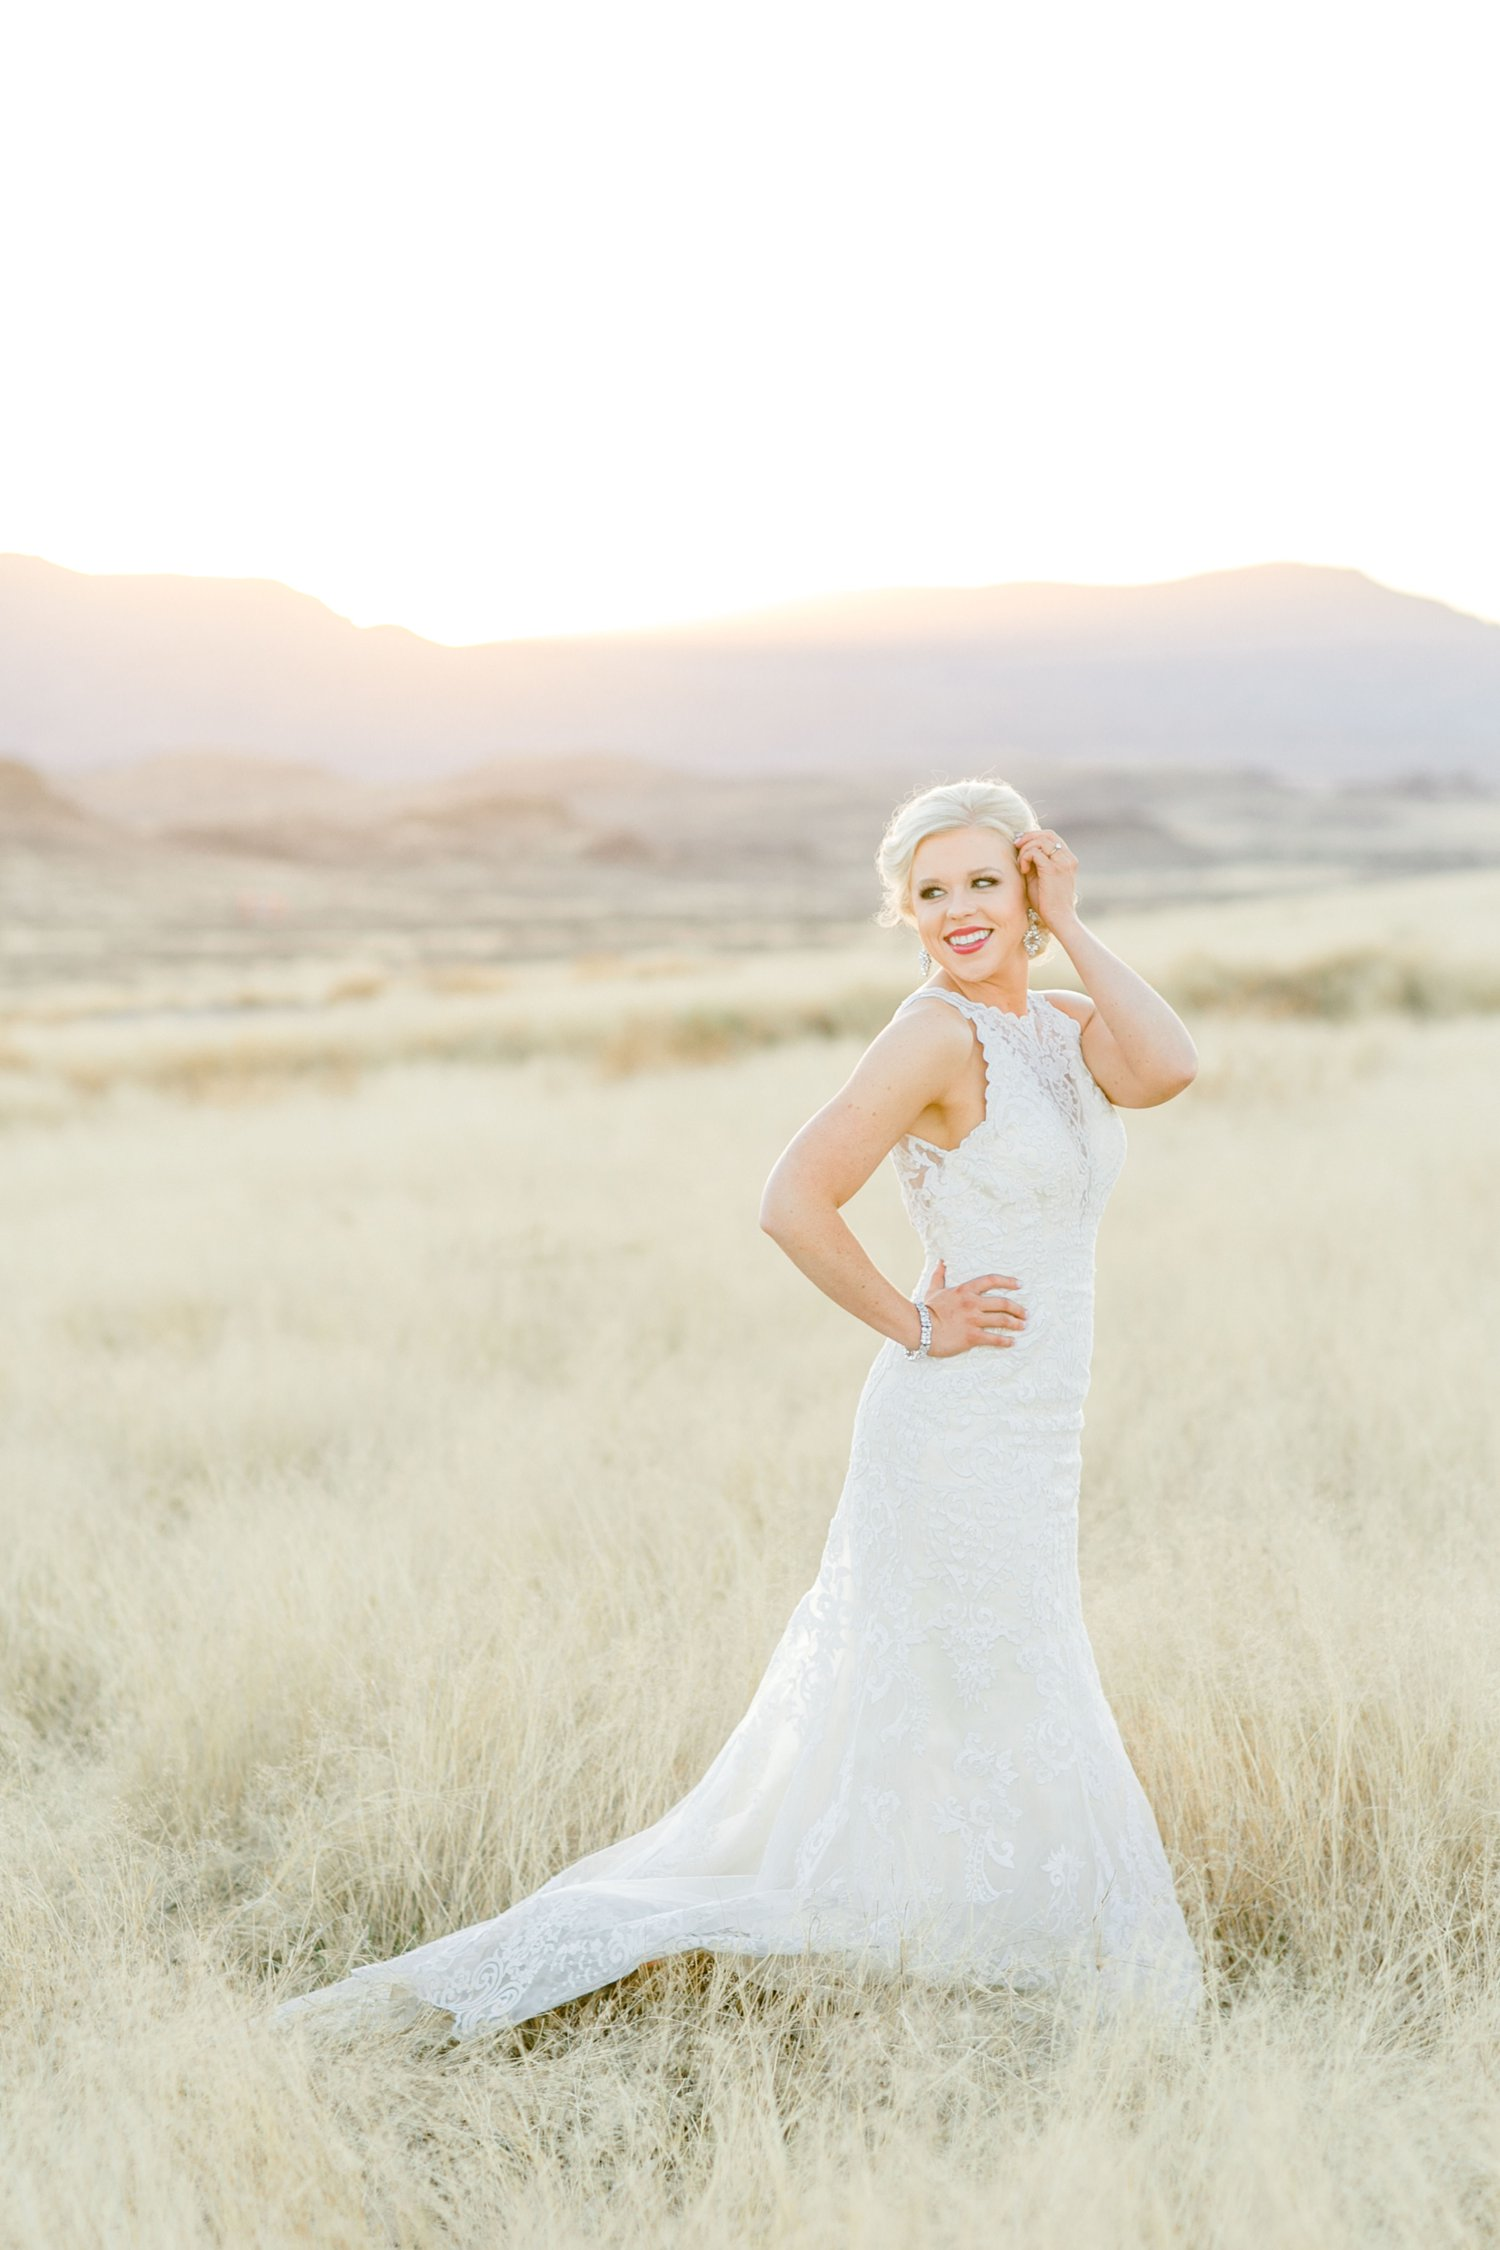 Jenna-evans-bridals-balmorhea-texas-fort-davis-wedding-photographer-lubbock-photographer__0062.jpg